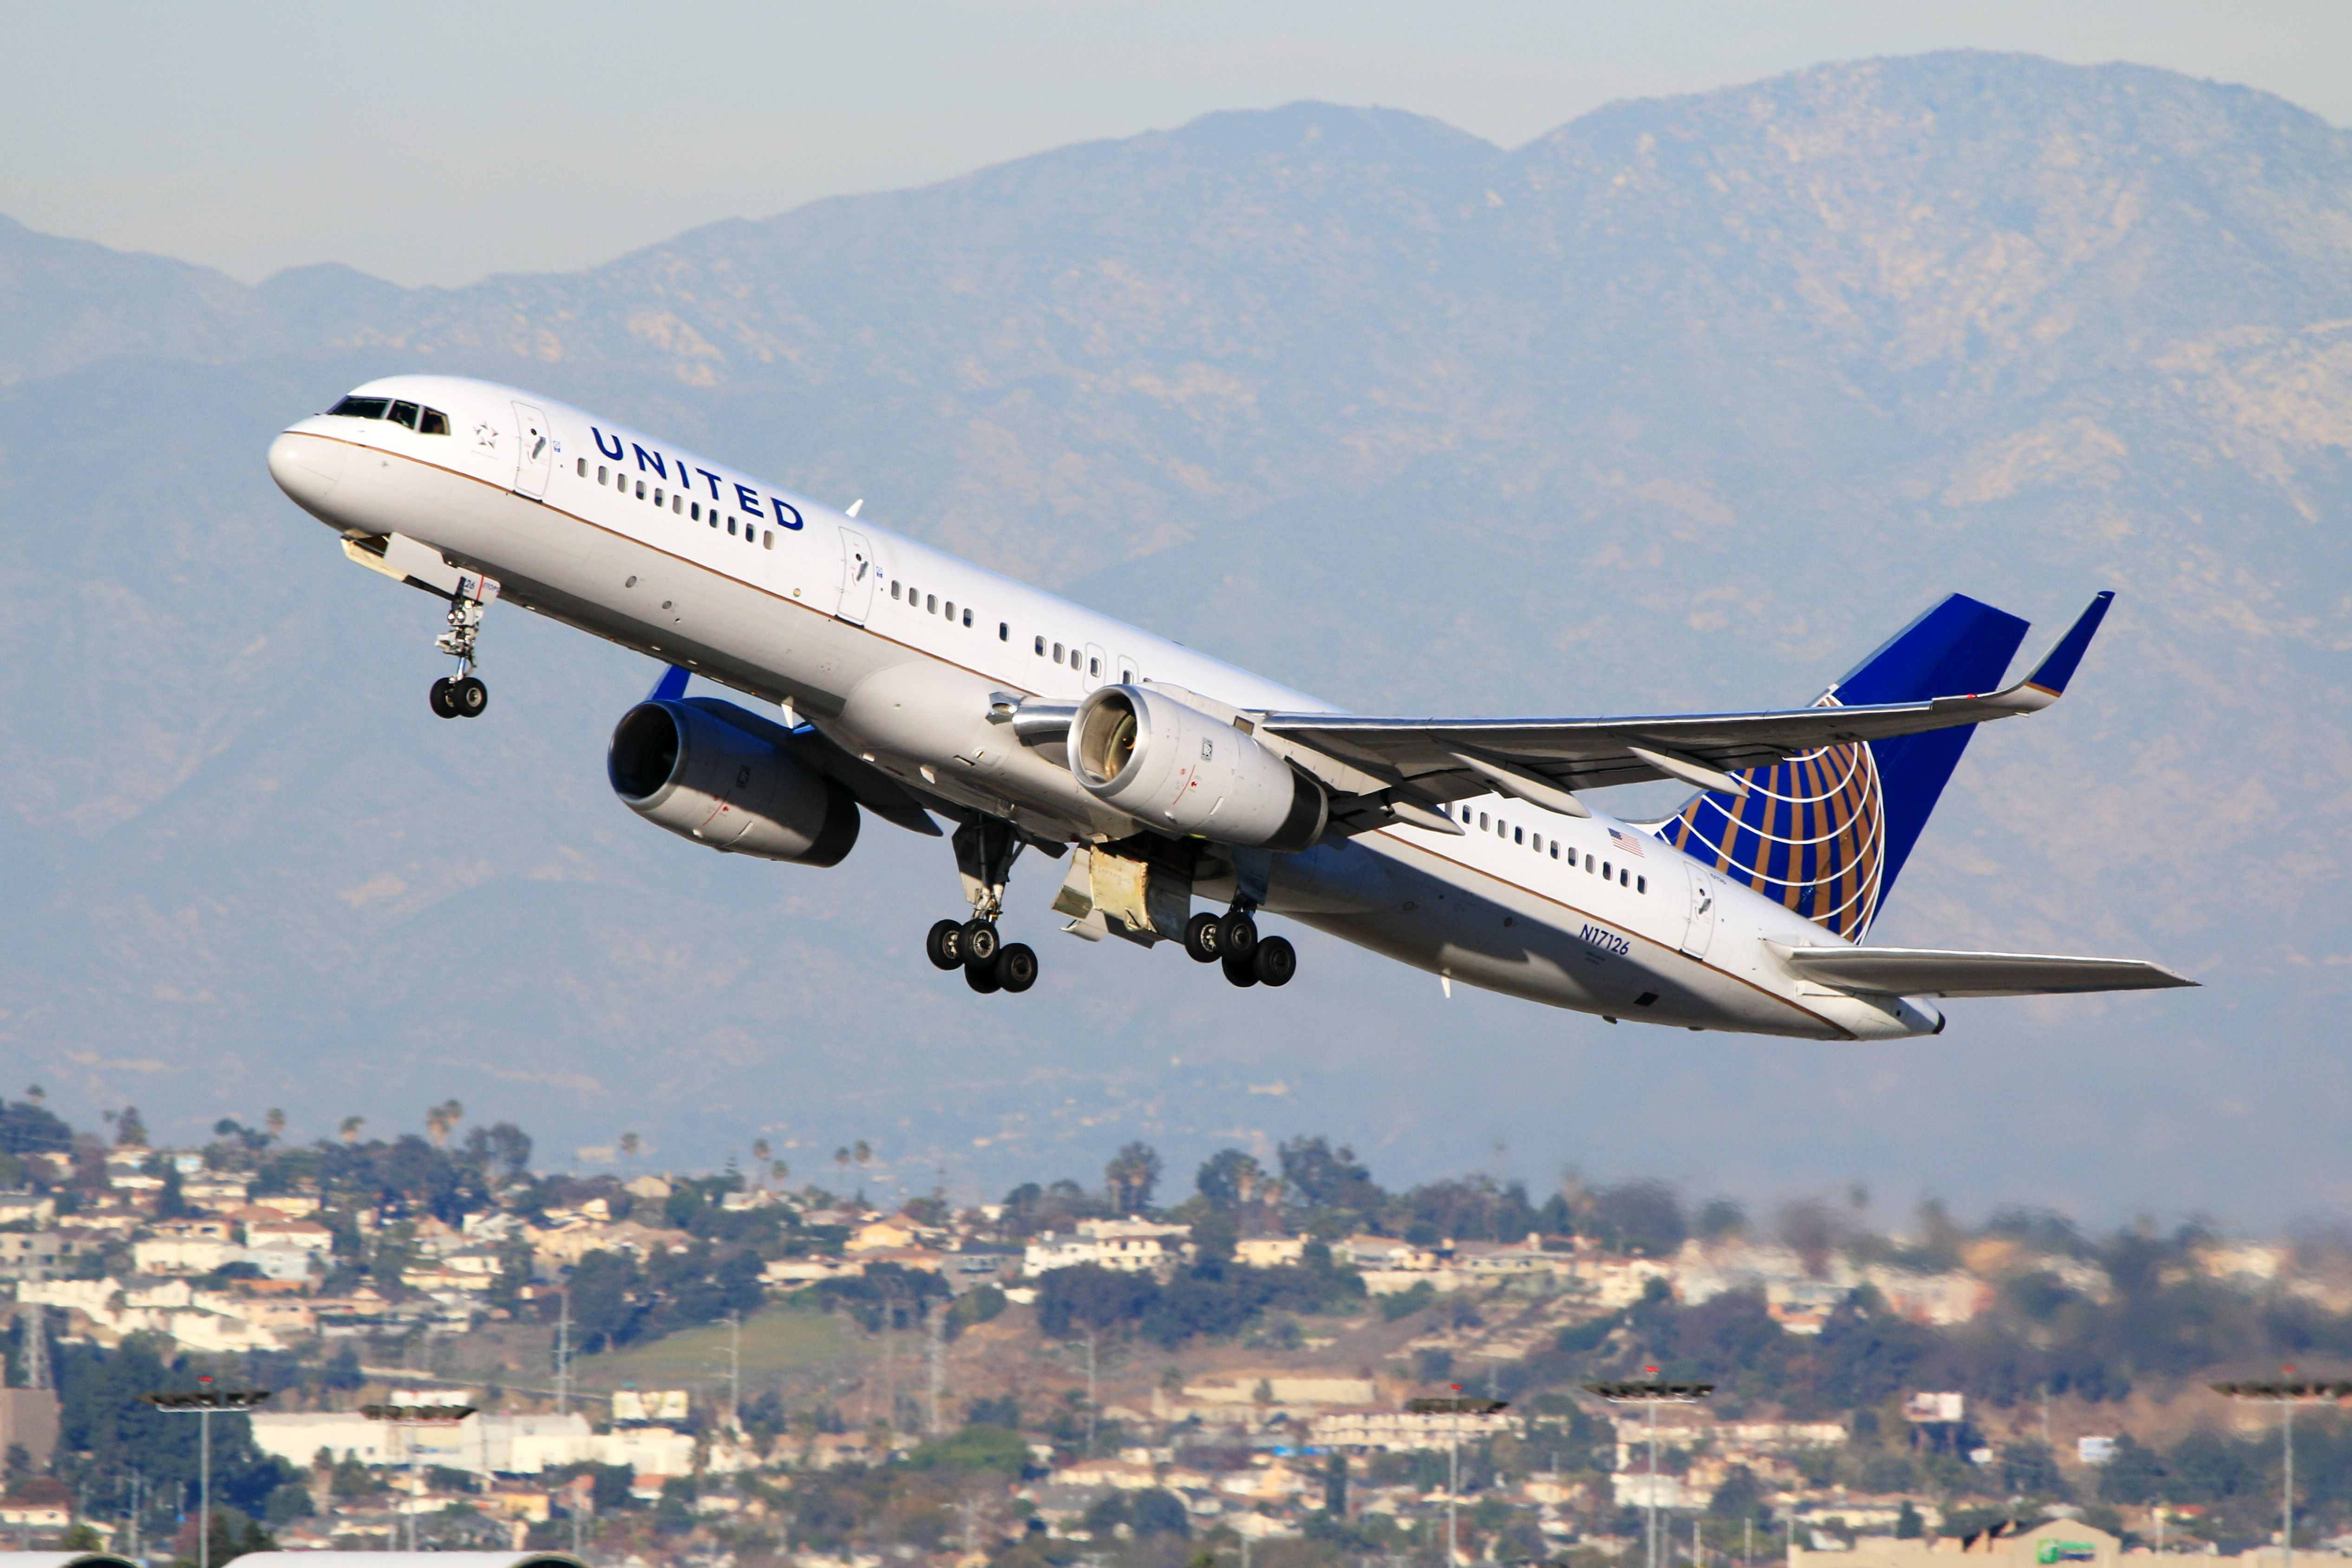 United passenger's T-shirt alluding to lynching journalists stirs debate over on-board threats